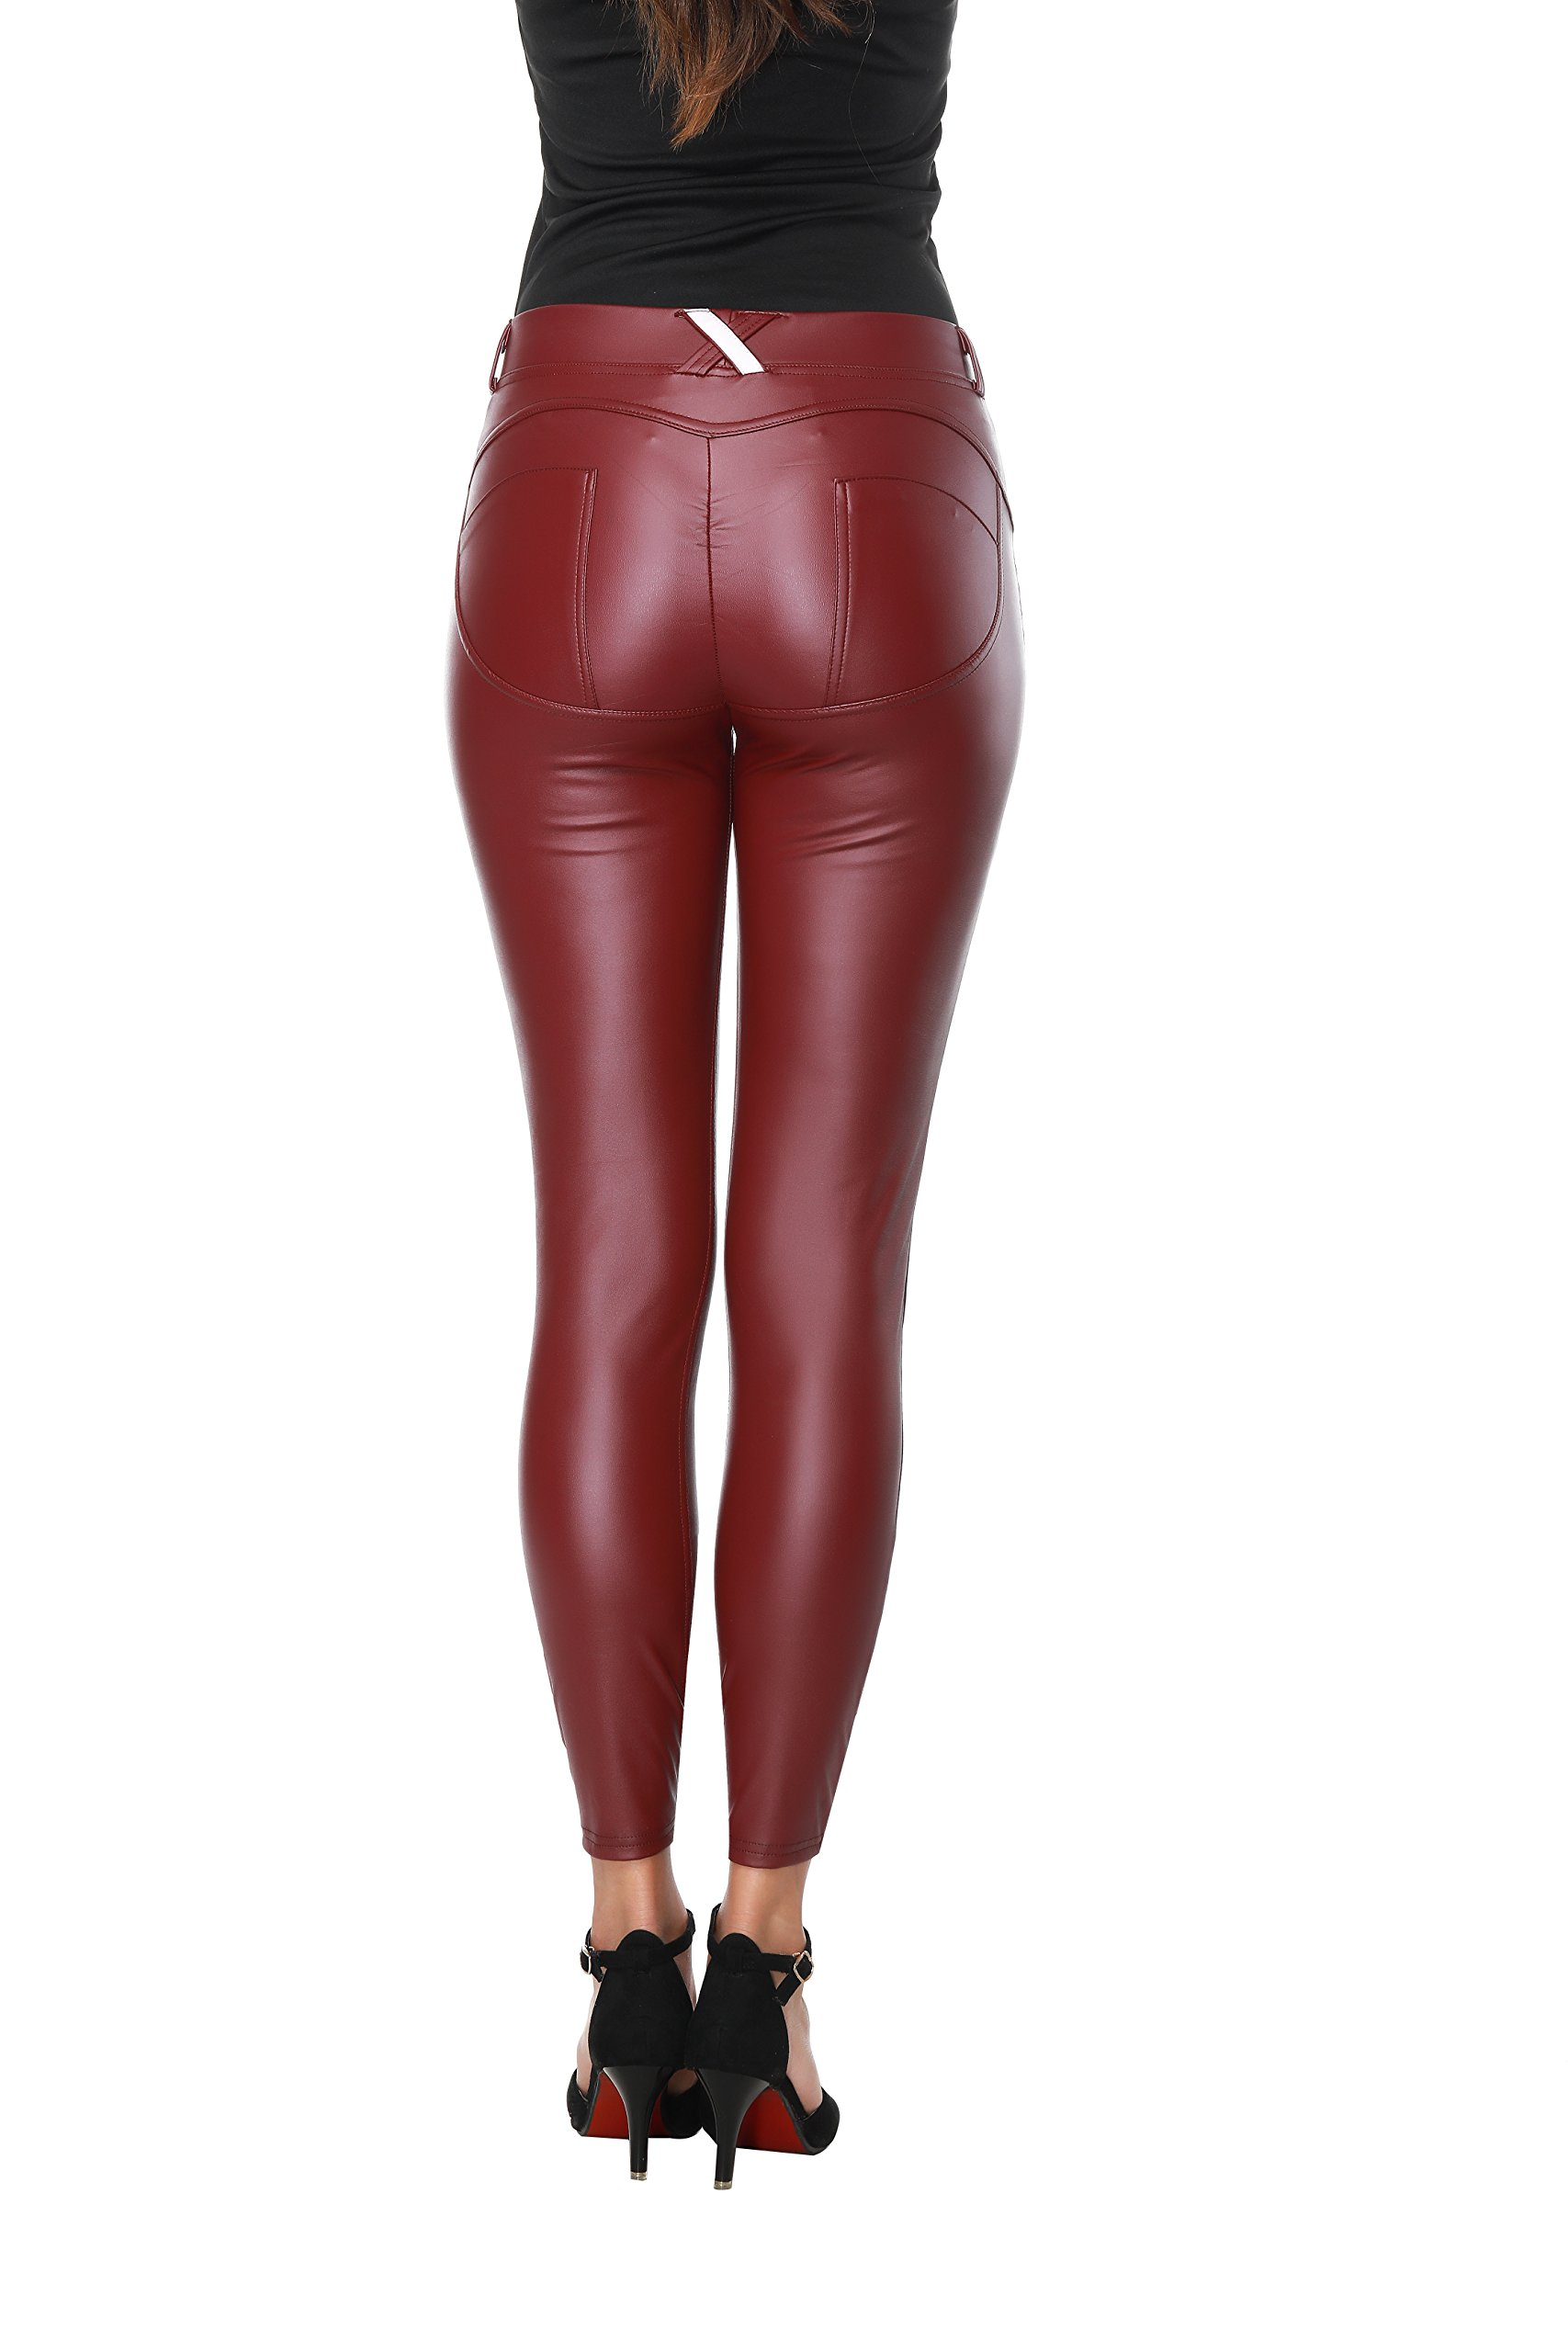 Faux Leather PU Elastic Shaping Hip Push Up Pants Black Sexy Leggings for Women ((Size 2-4)Medium, Wine Red)